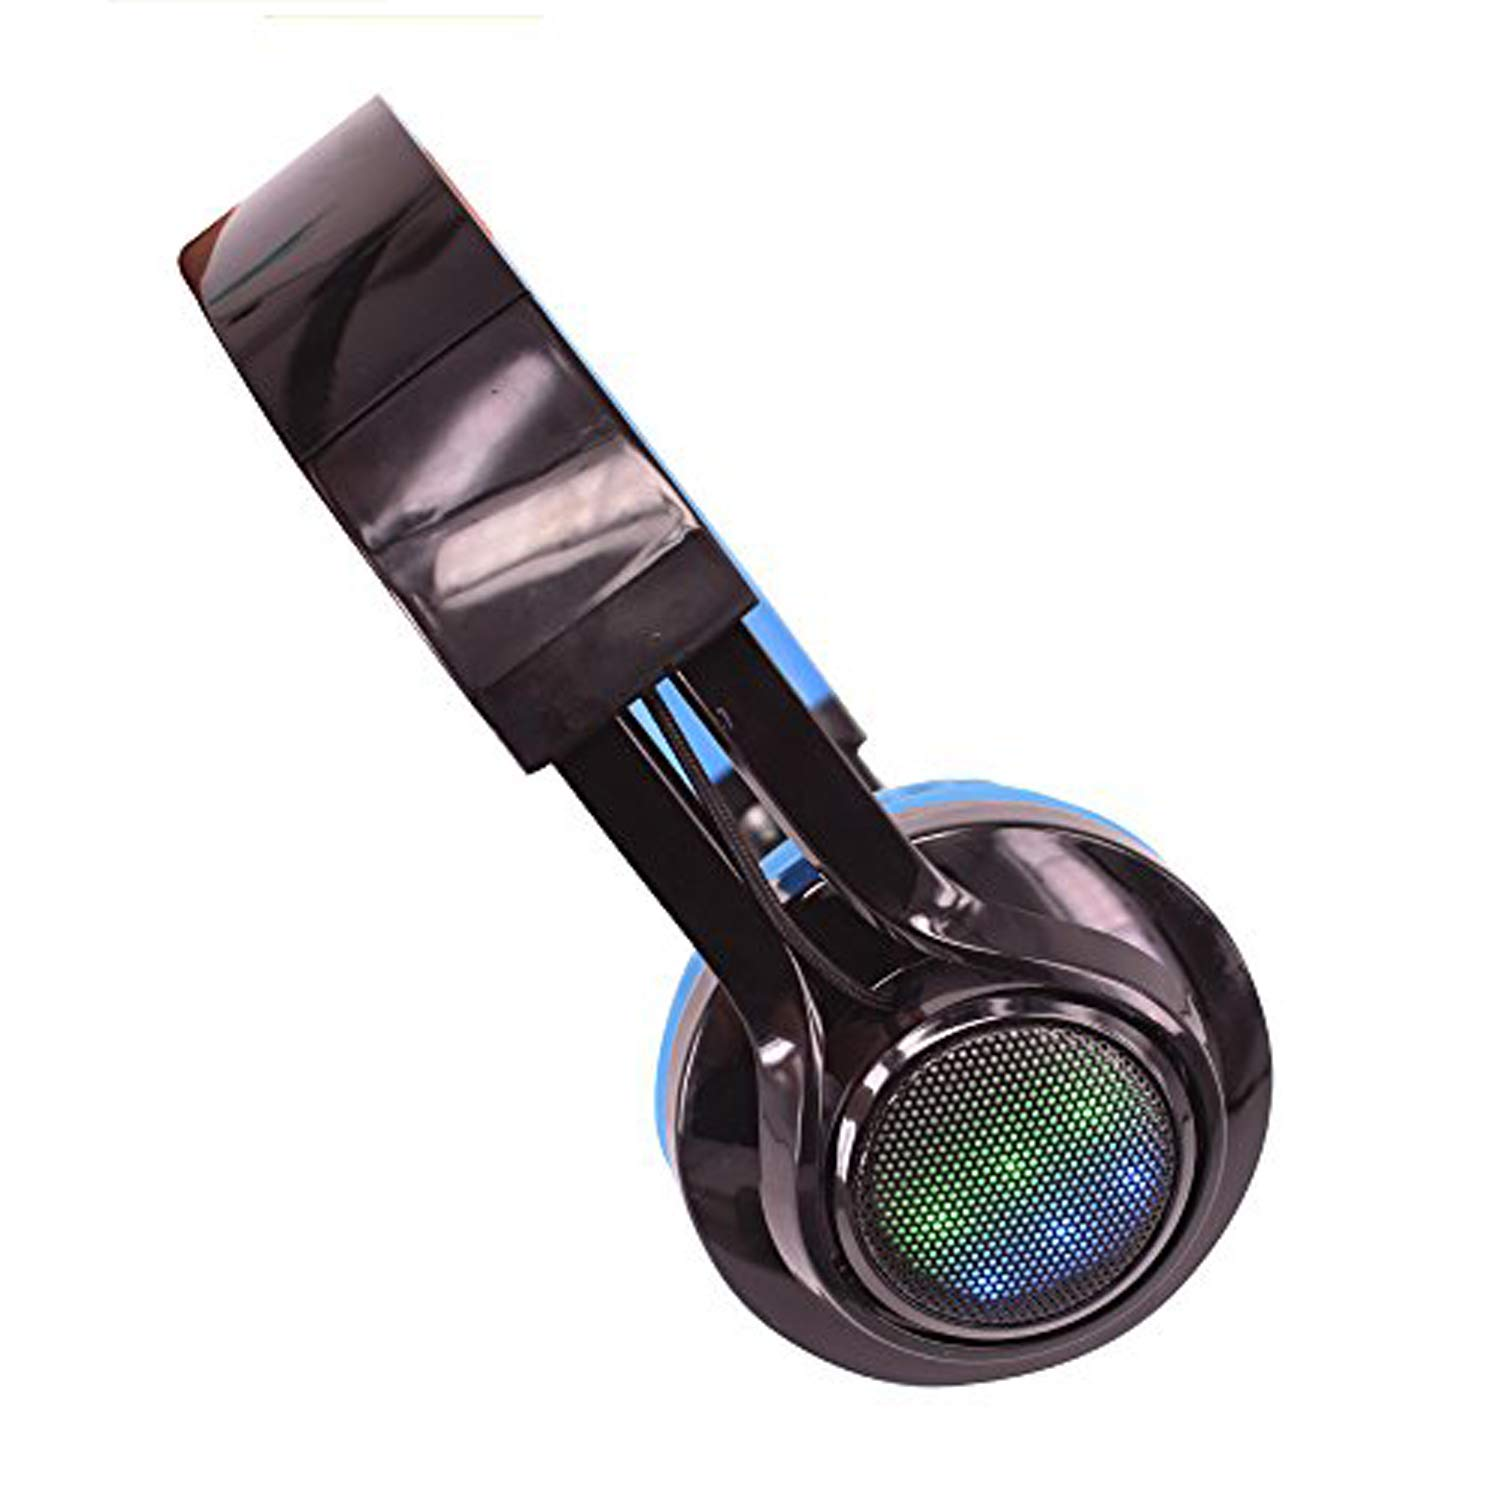 4In1 Wireless Bluetooth LED Stereo Headphone, FM Radio TF Card MP3 Point Headset + Microphone Waterproof Support Music Streaming Hands-Free Calling for iPhone iPad Tablet TV Smartphones (Blue)